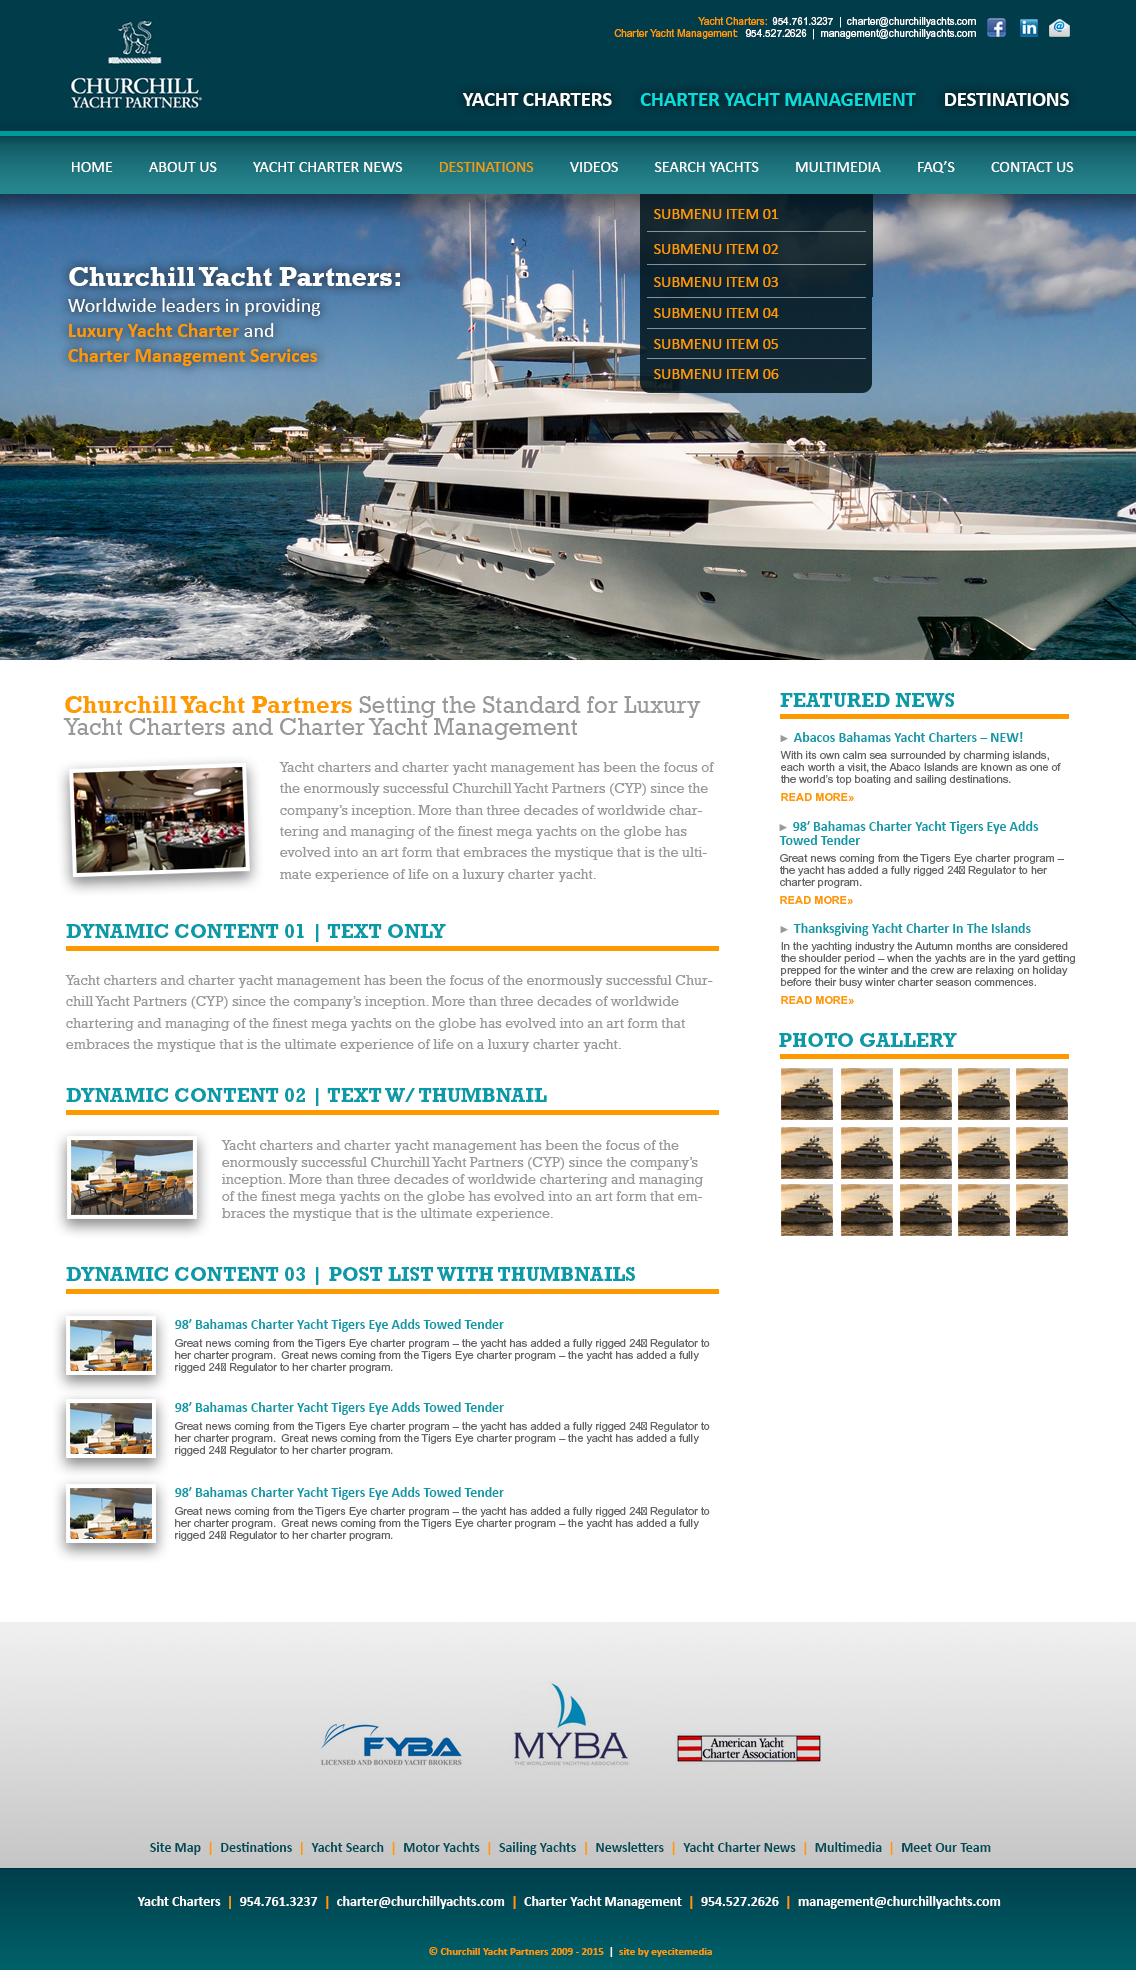 Churchill Yacht Partners | PSD Website Interface Design